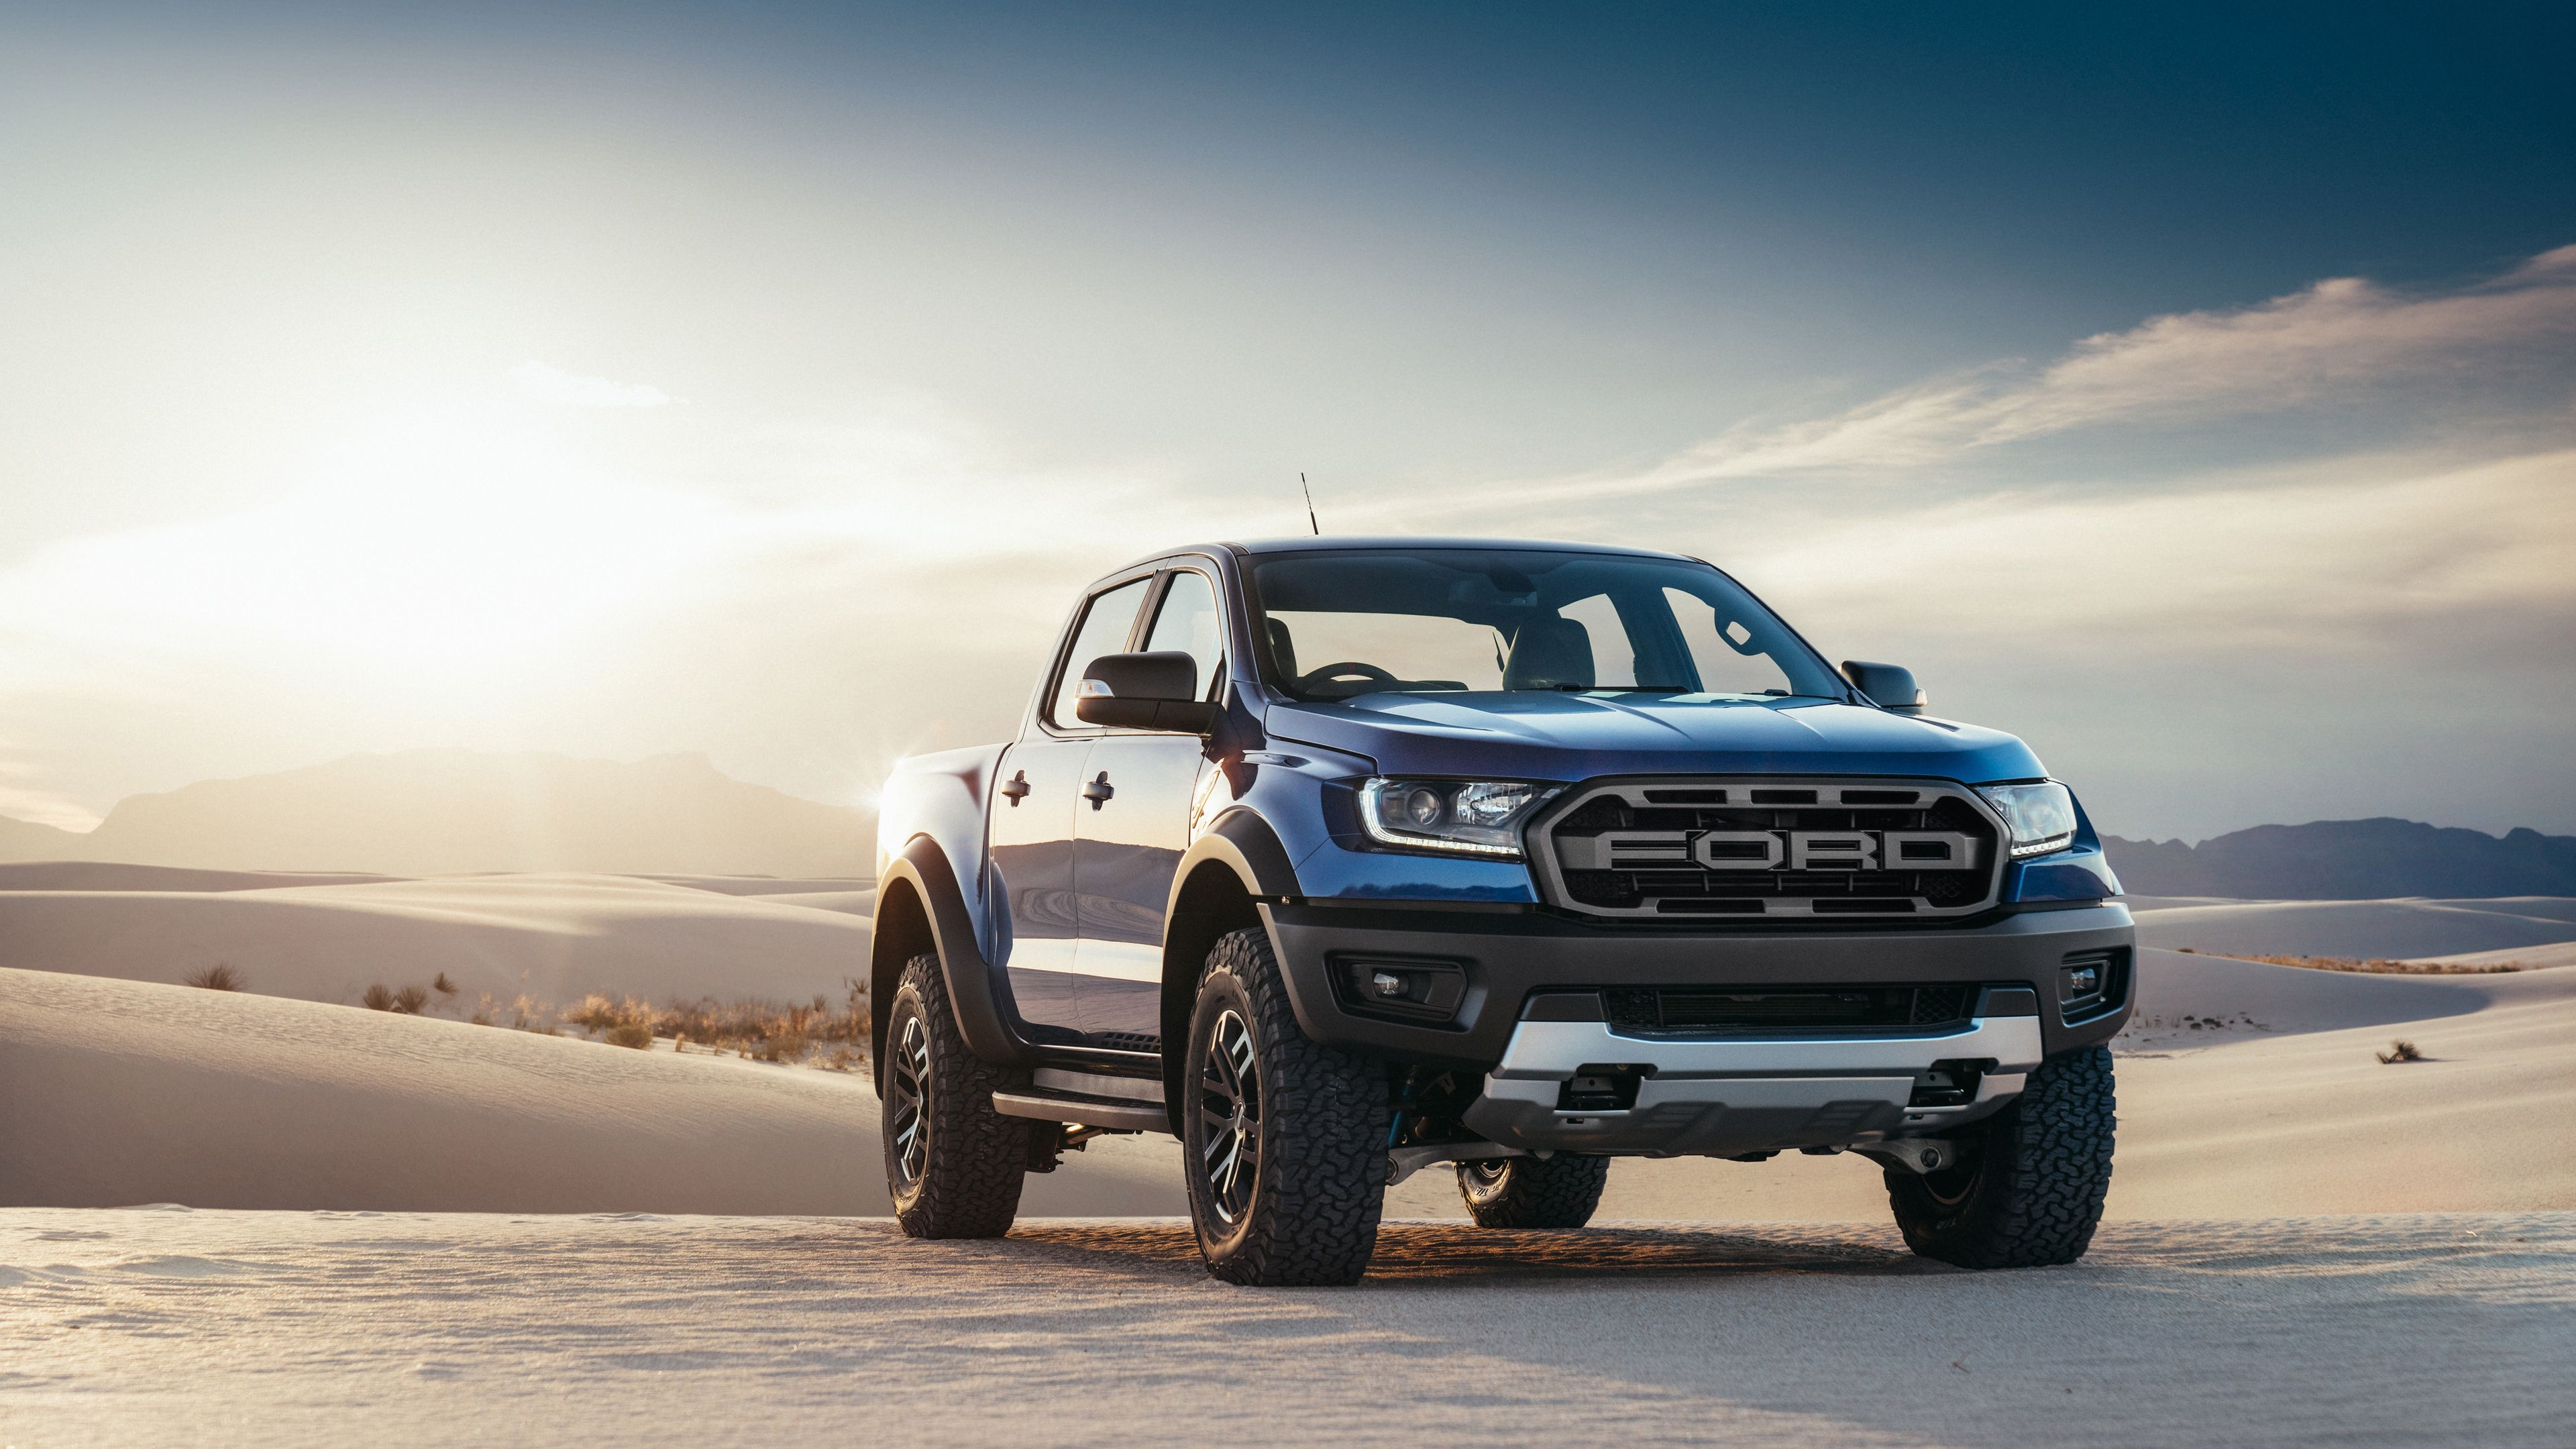 Wallpaper 4k 2019 Ford Ranger Raptor 2019 Cars Wallpapers 4k